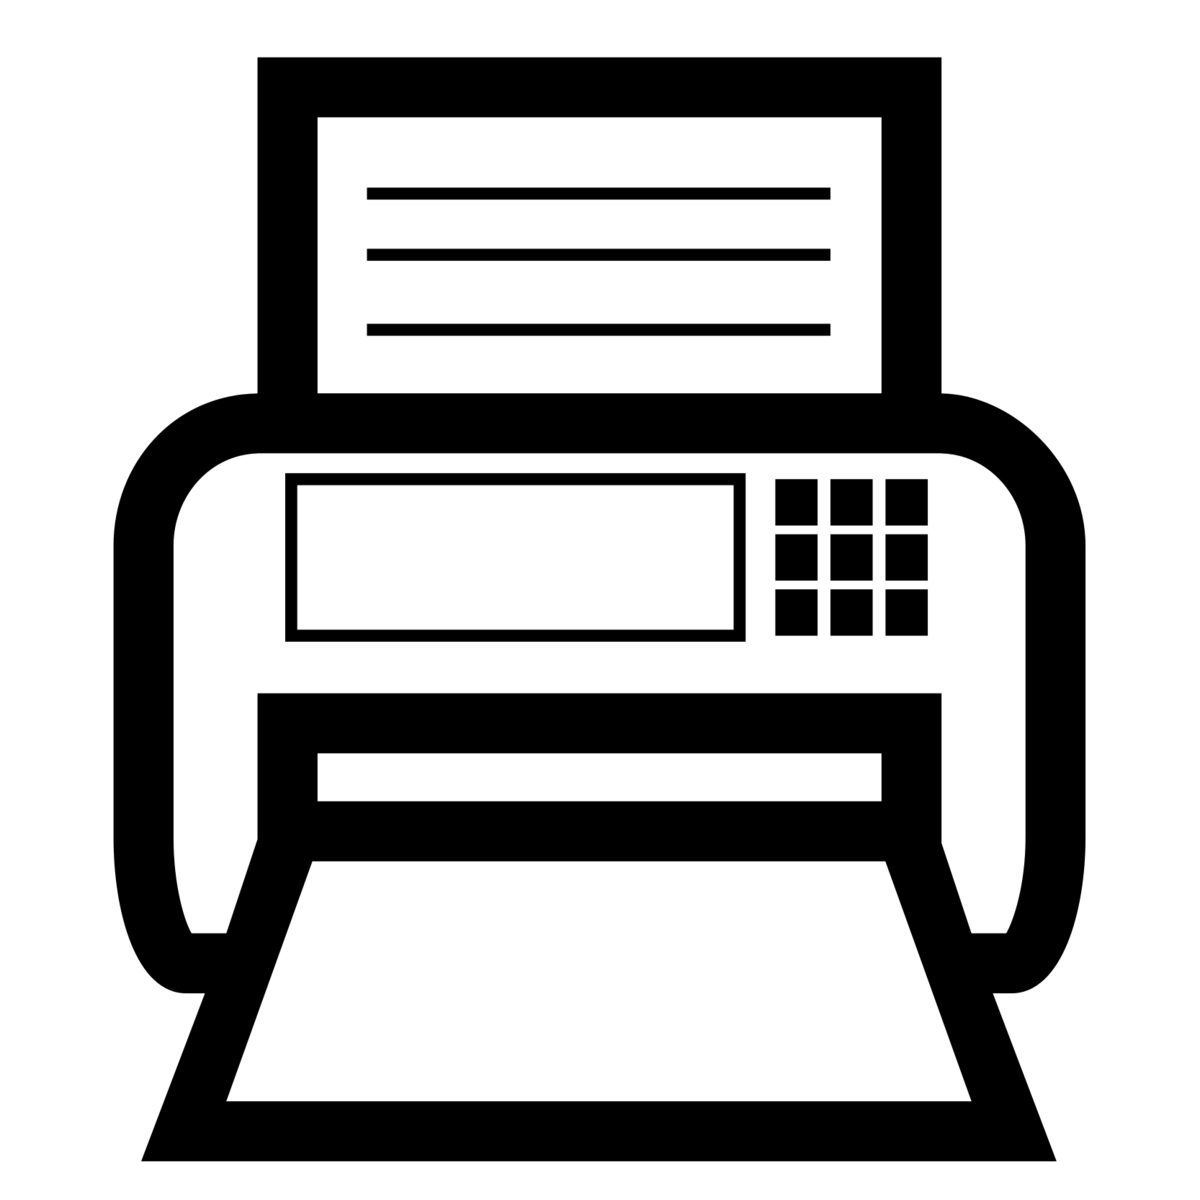 fax-png-icon